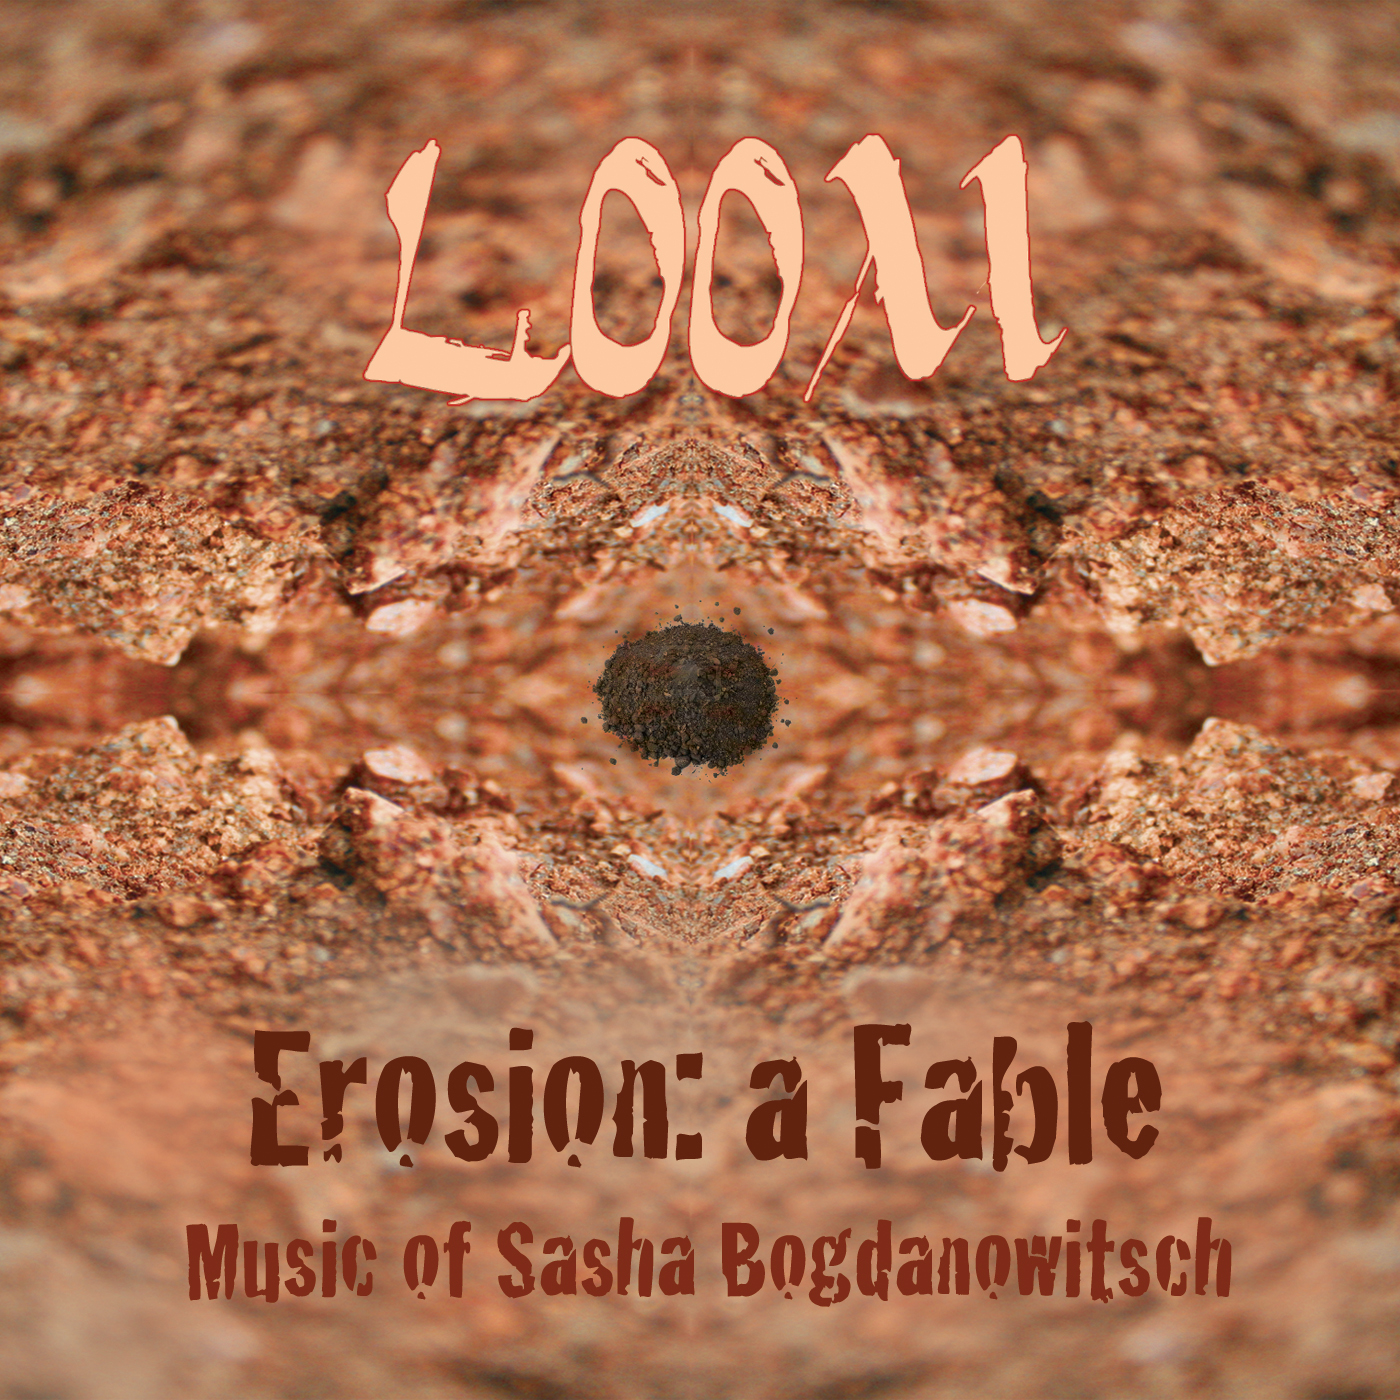 Erosion: a Fable Album Cover